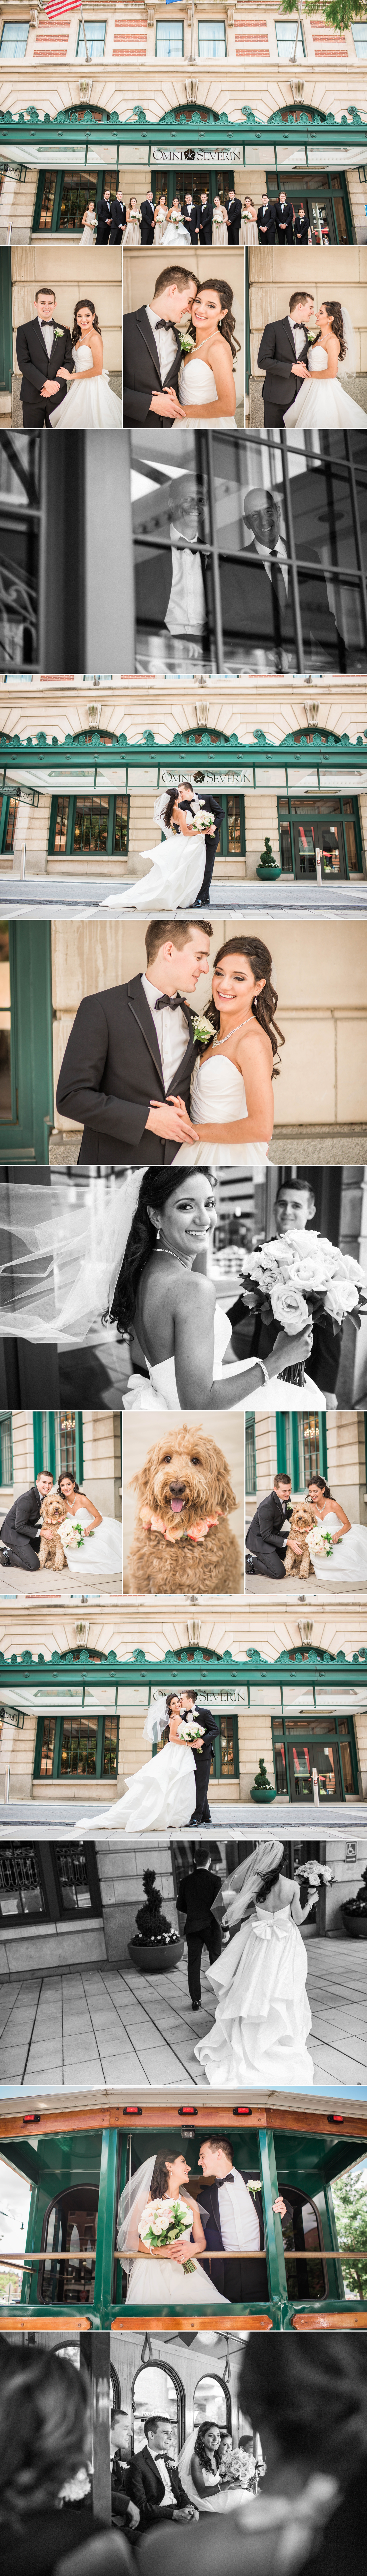 wedding-wedding day-bride-groom-wedding portraits-downtown-indianapolis-the omni